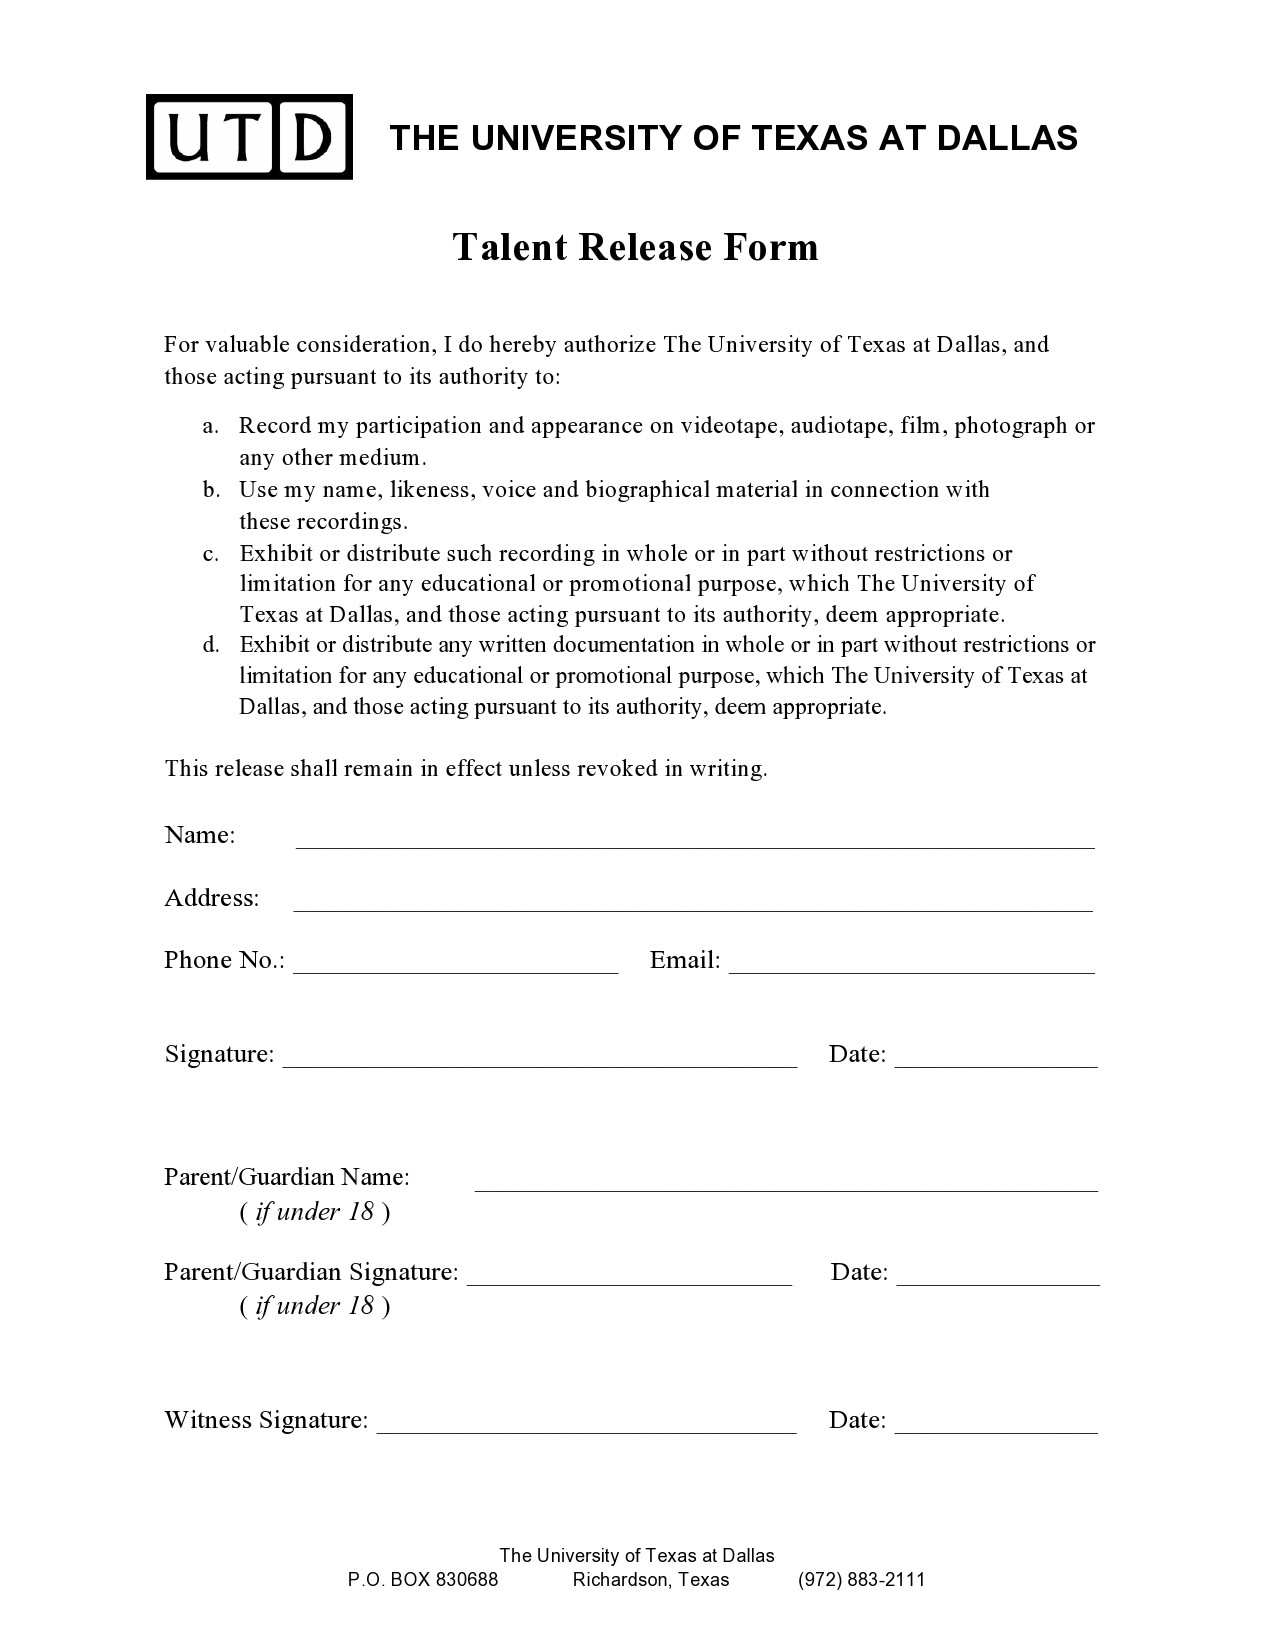 Free talent release form 20